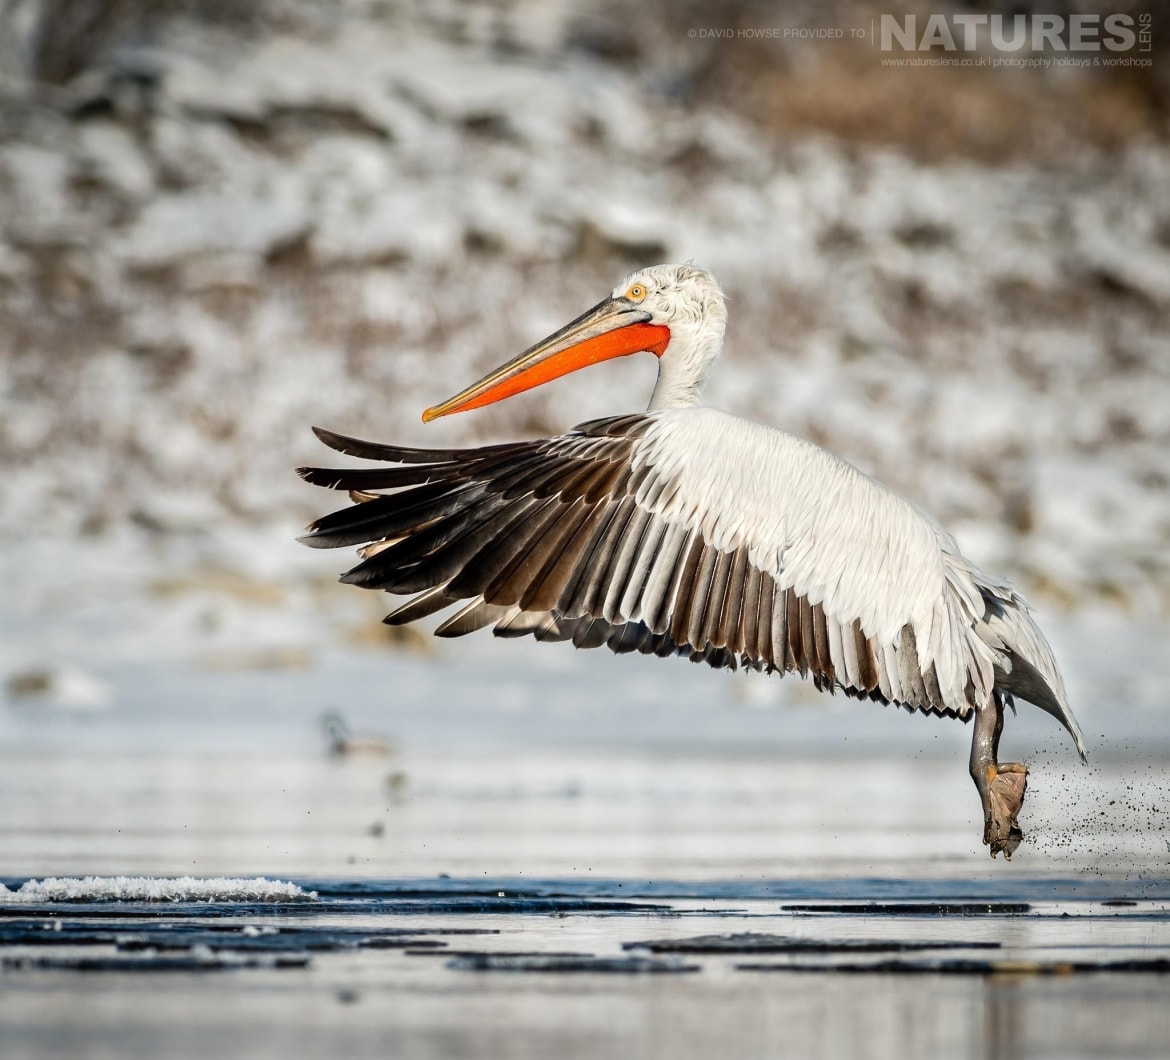 One of the Dalmatian Pelicans comes in to land on an icy stretch of water near Lake Kerkini photographed on the NaturesLens Dalmatian Pelicans Photography Holiday